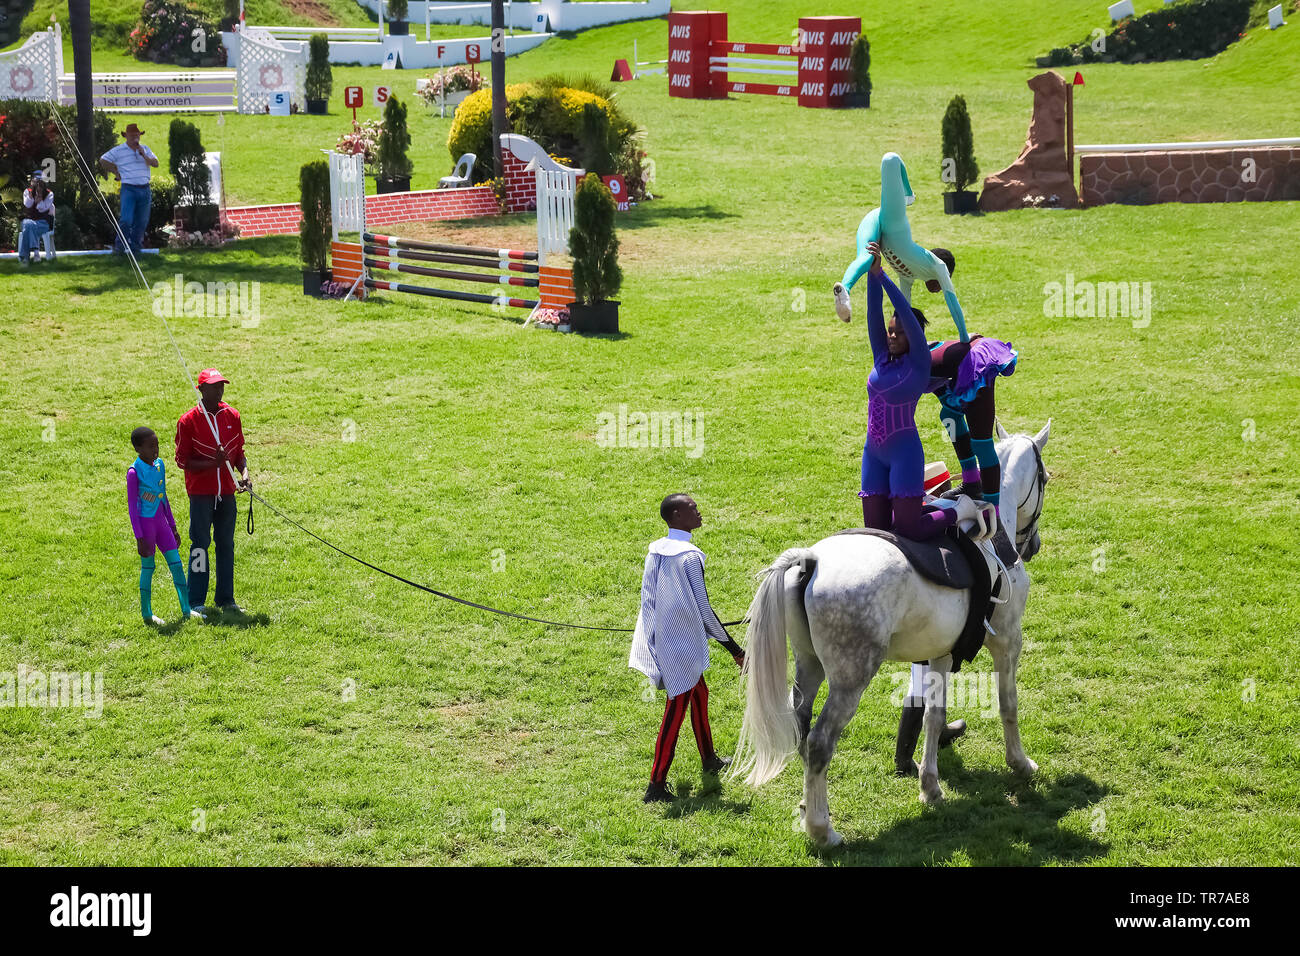 Johannesburg, South Africa - October 08 2011: Equestrian Show Jumping and Horse Riding display - Stock Image